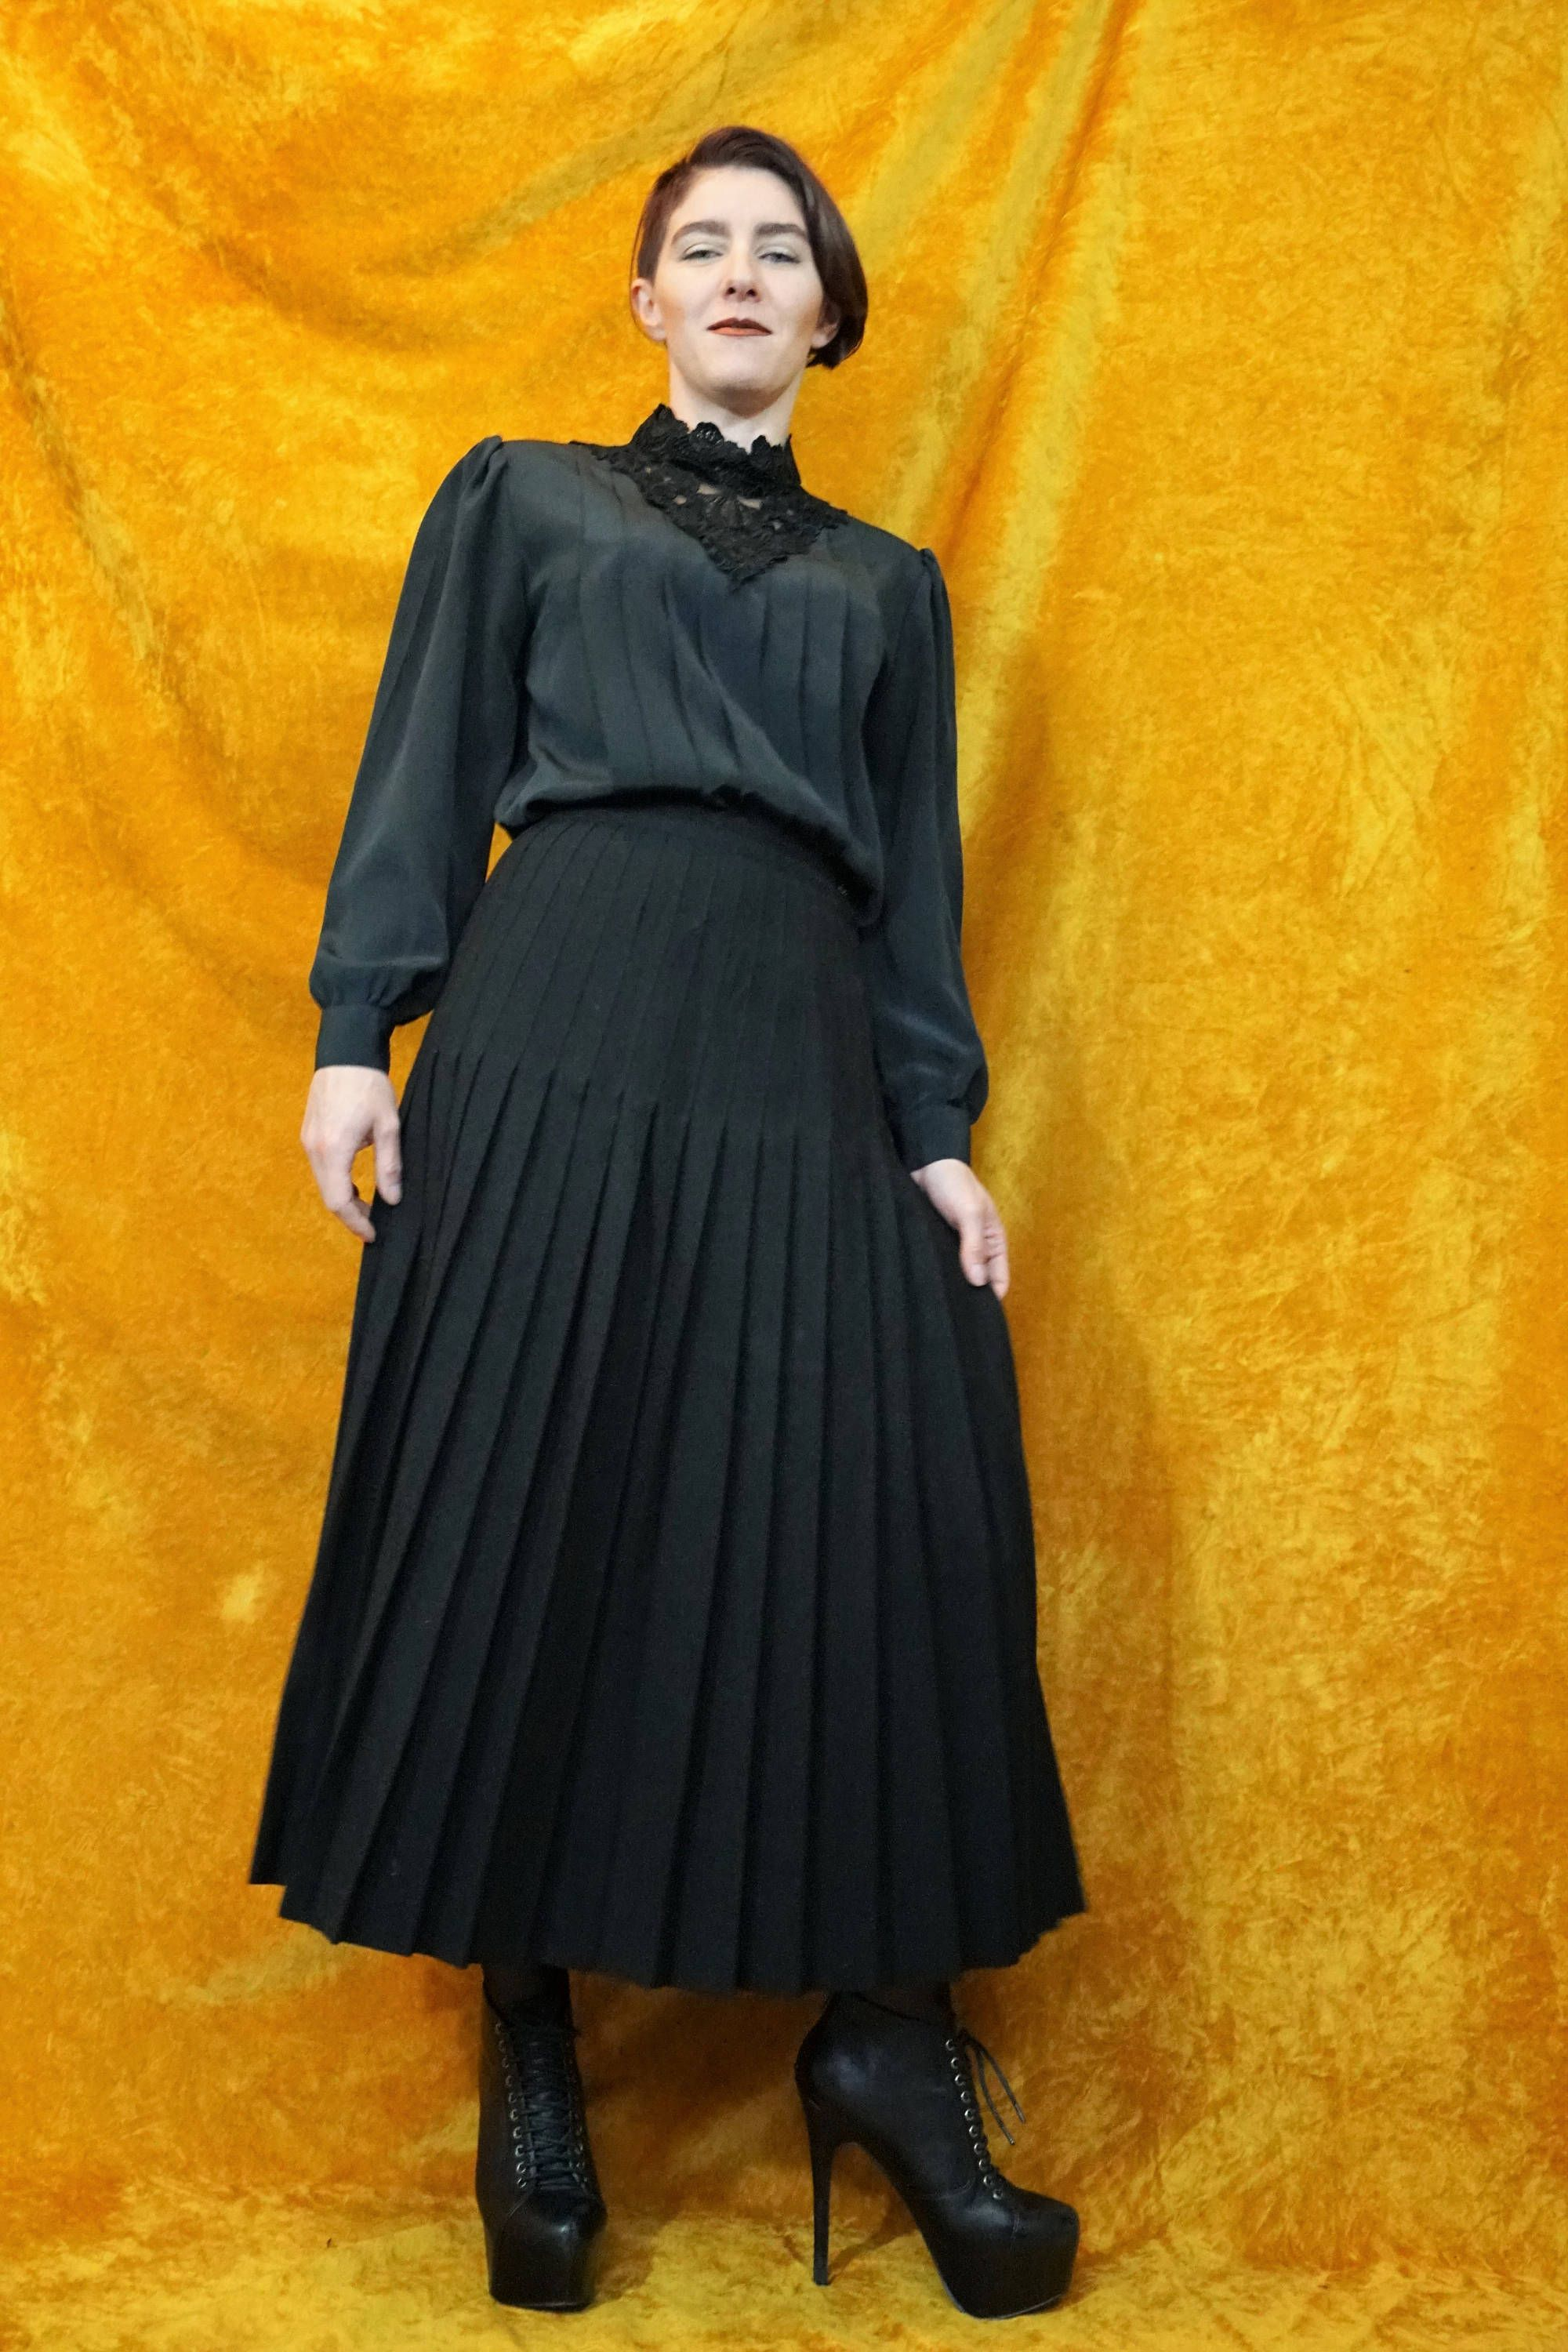 d06a1b80a107b Black Gothic Blouse with Pleated Bodice & Lace Turtleneck Collar ...